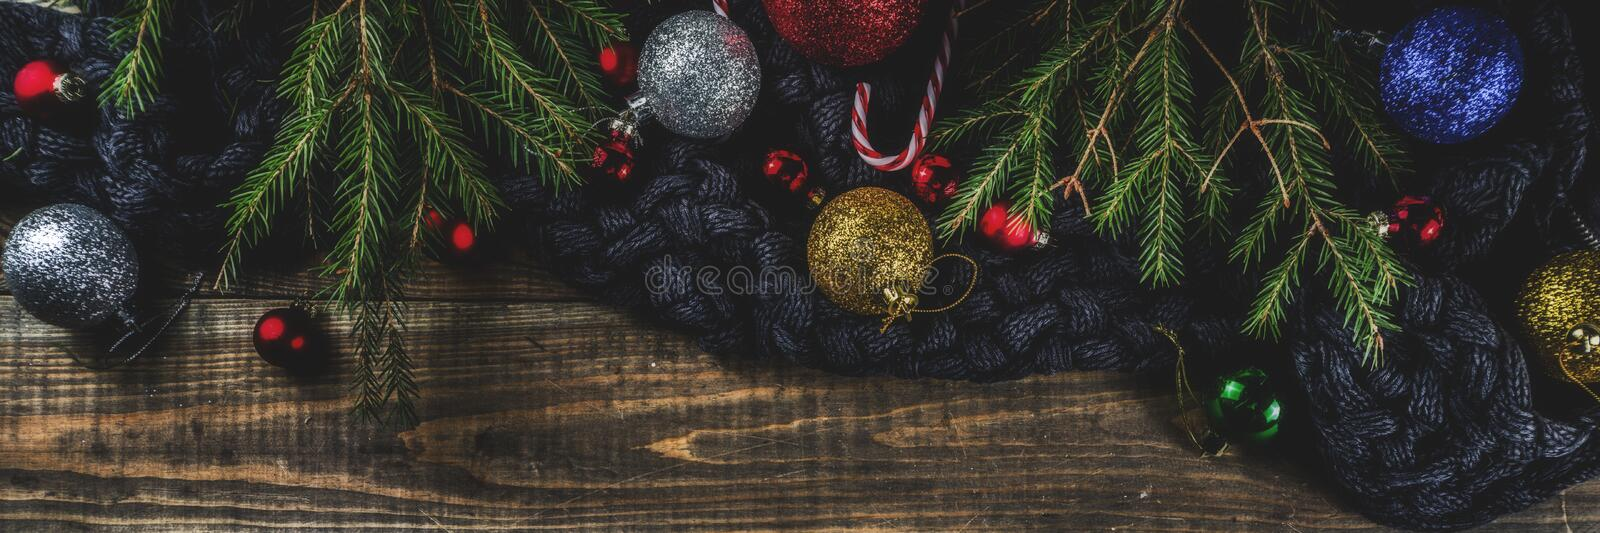 Christmas and New Year holidays background stock image